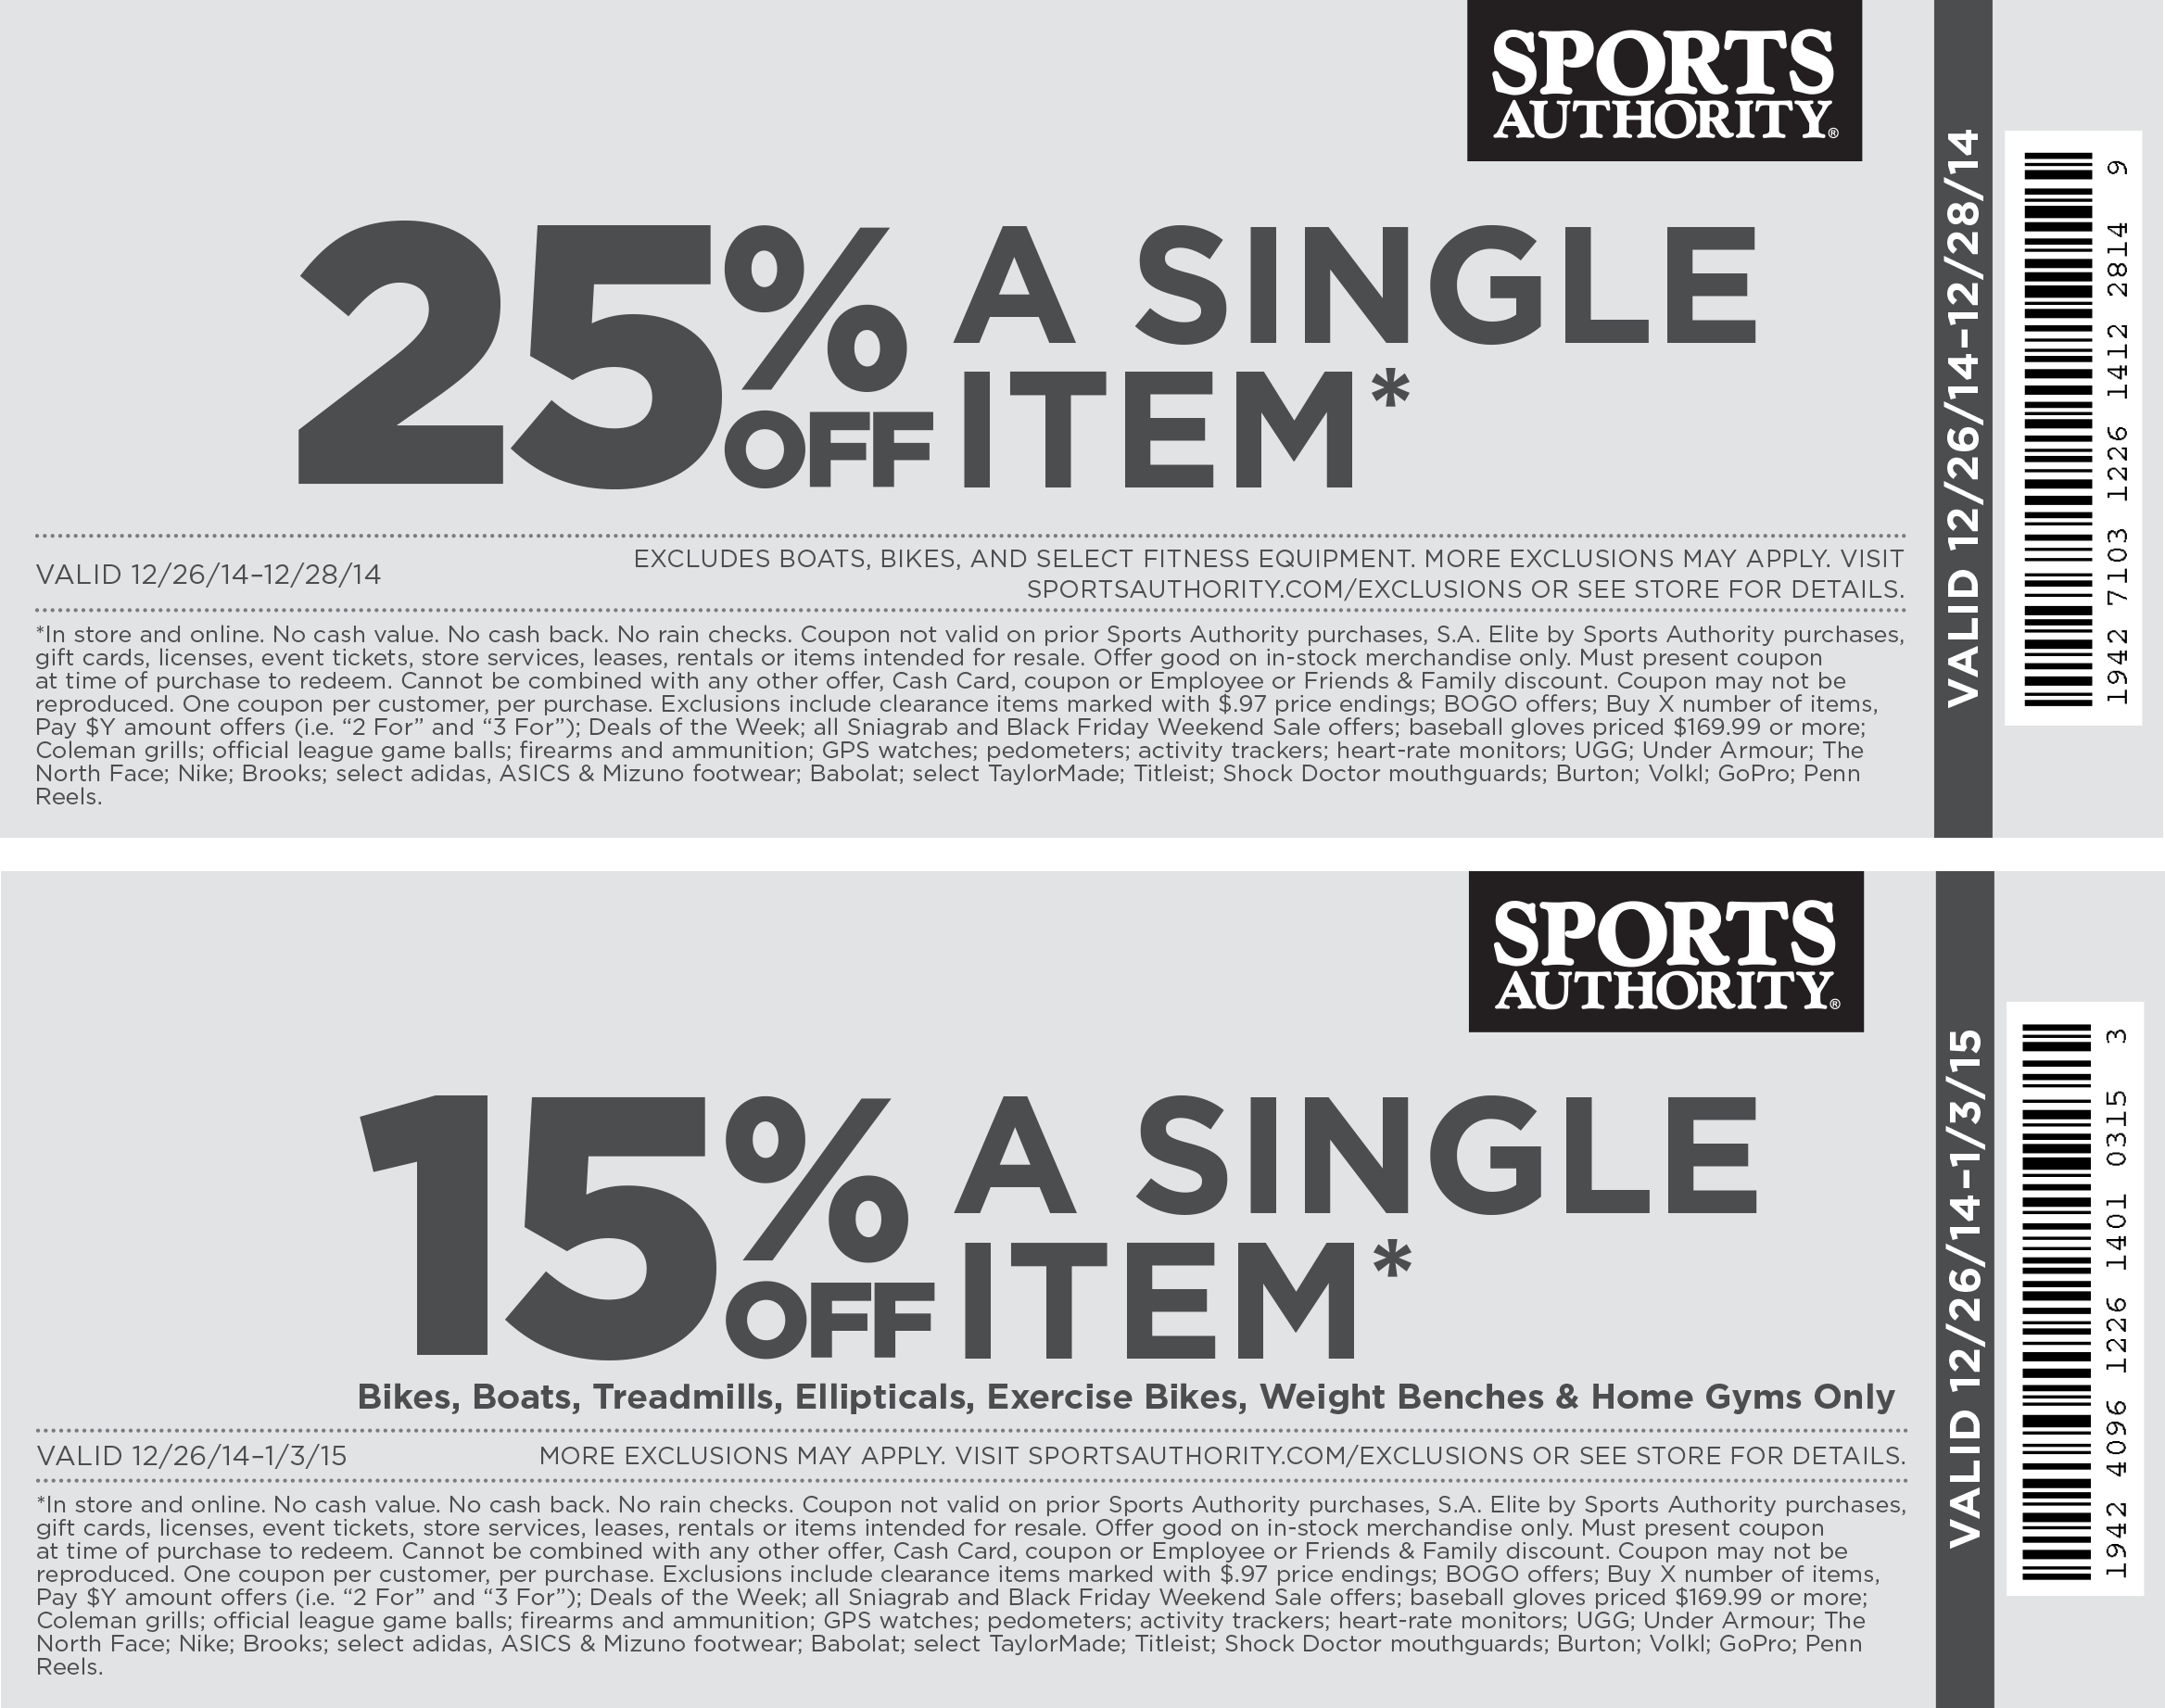 Sports Authority Coupon November 2018 25% off a single item at Sports Authority, ditto online